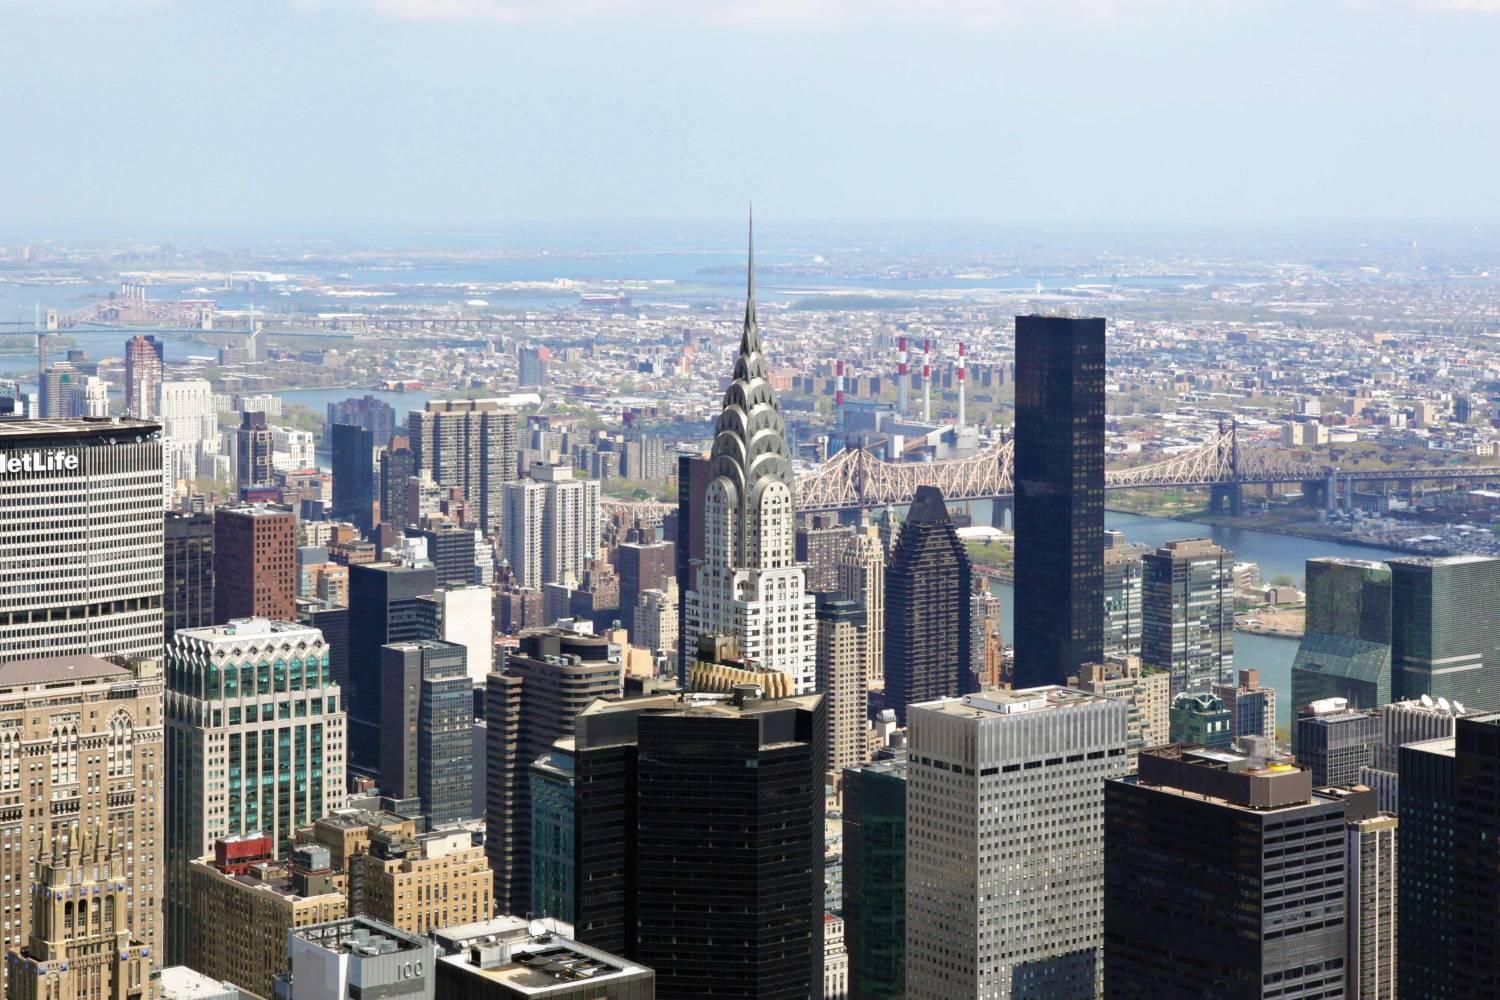 Chrysler Building, view